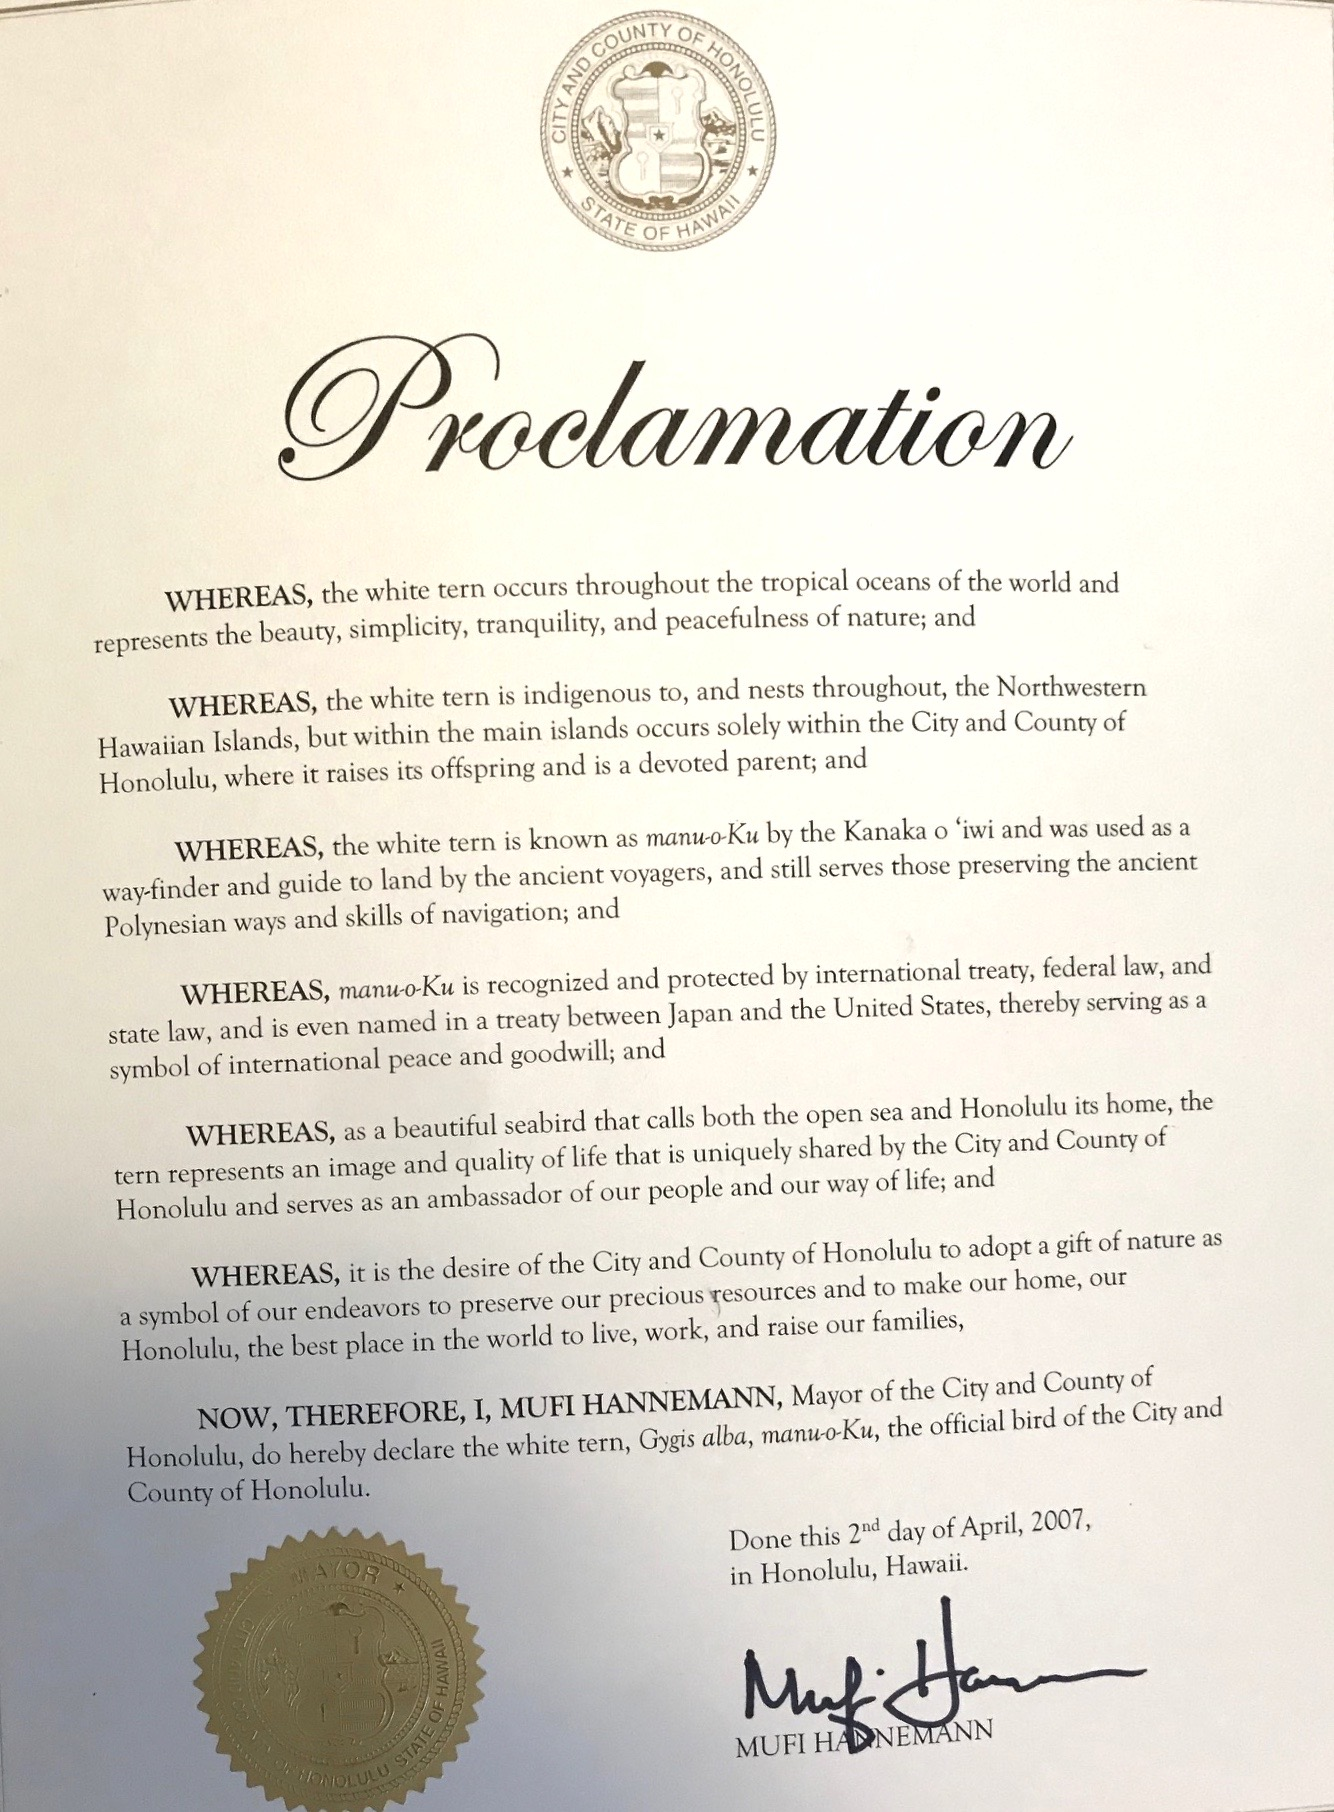 image of proclamation declaring official bird